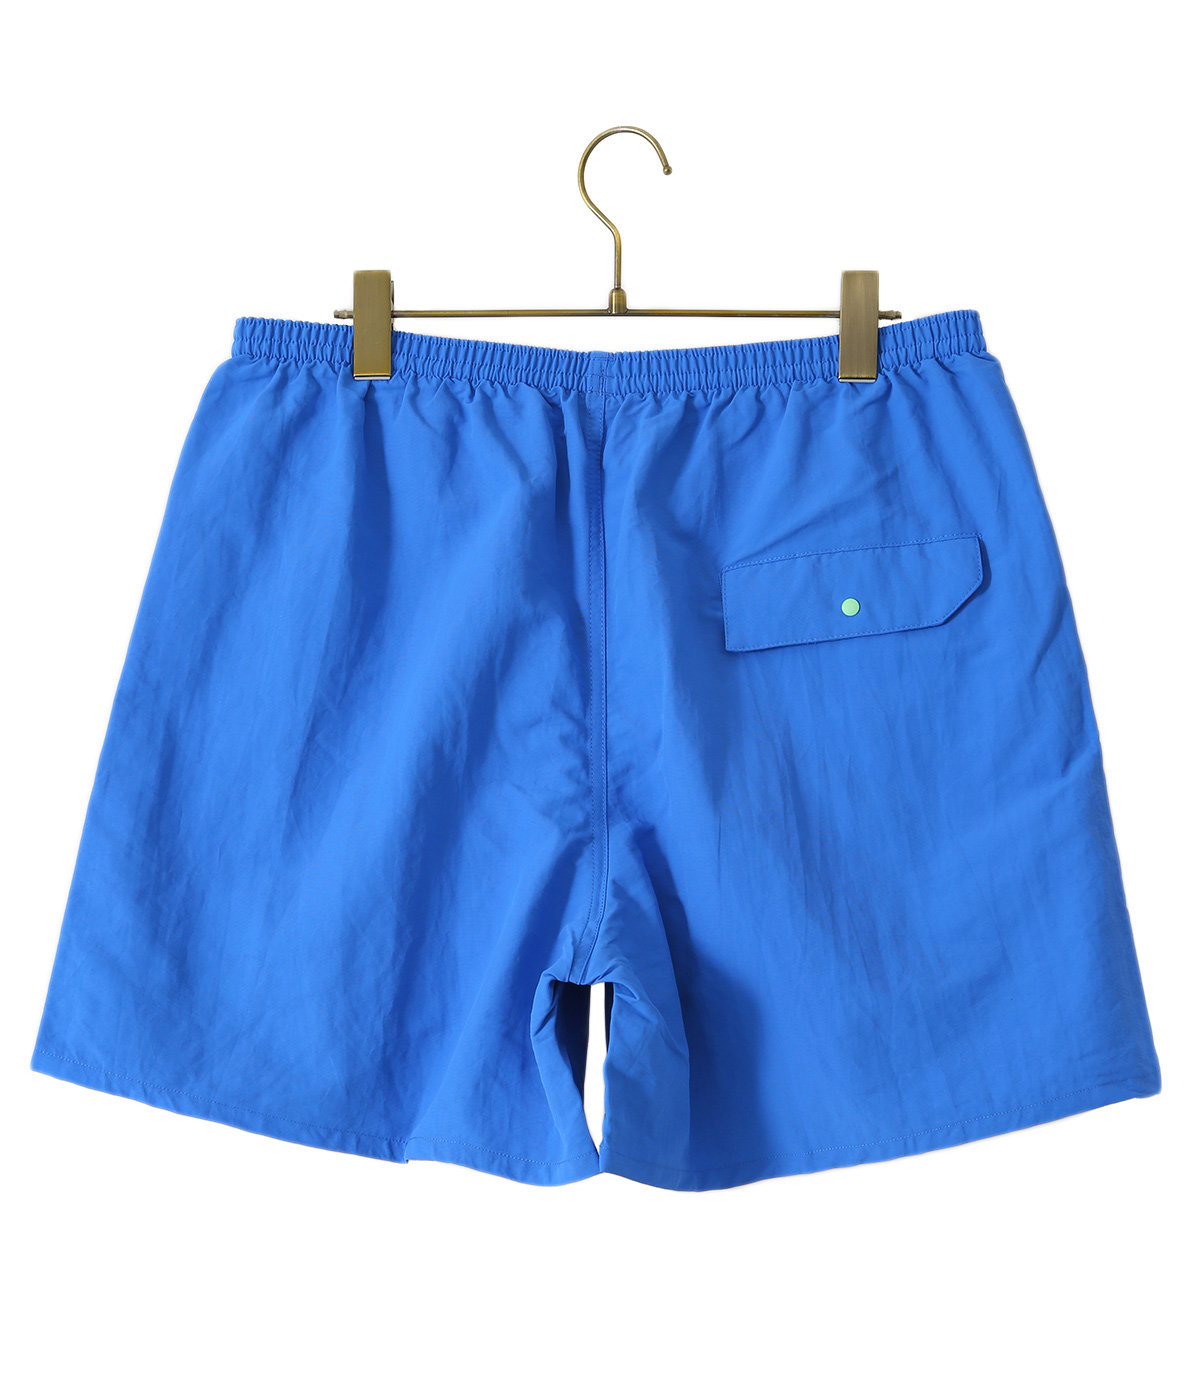 "M's Baggies Shorts -5in"" -ABKG-"